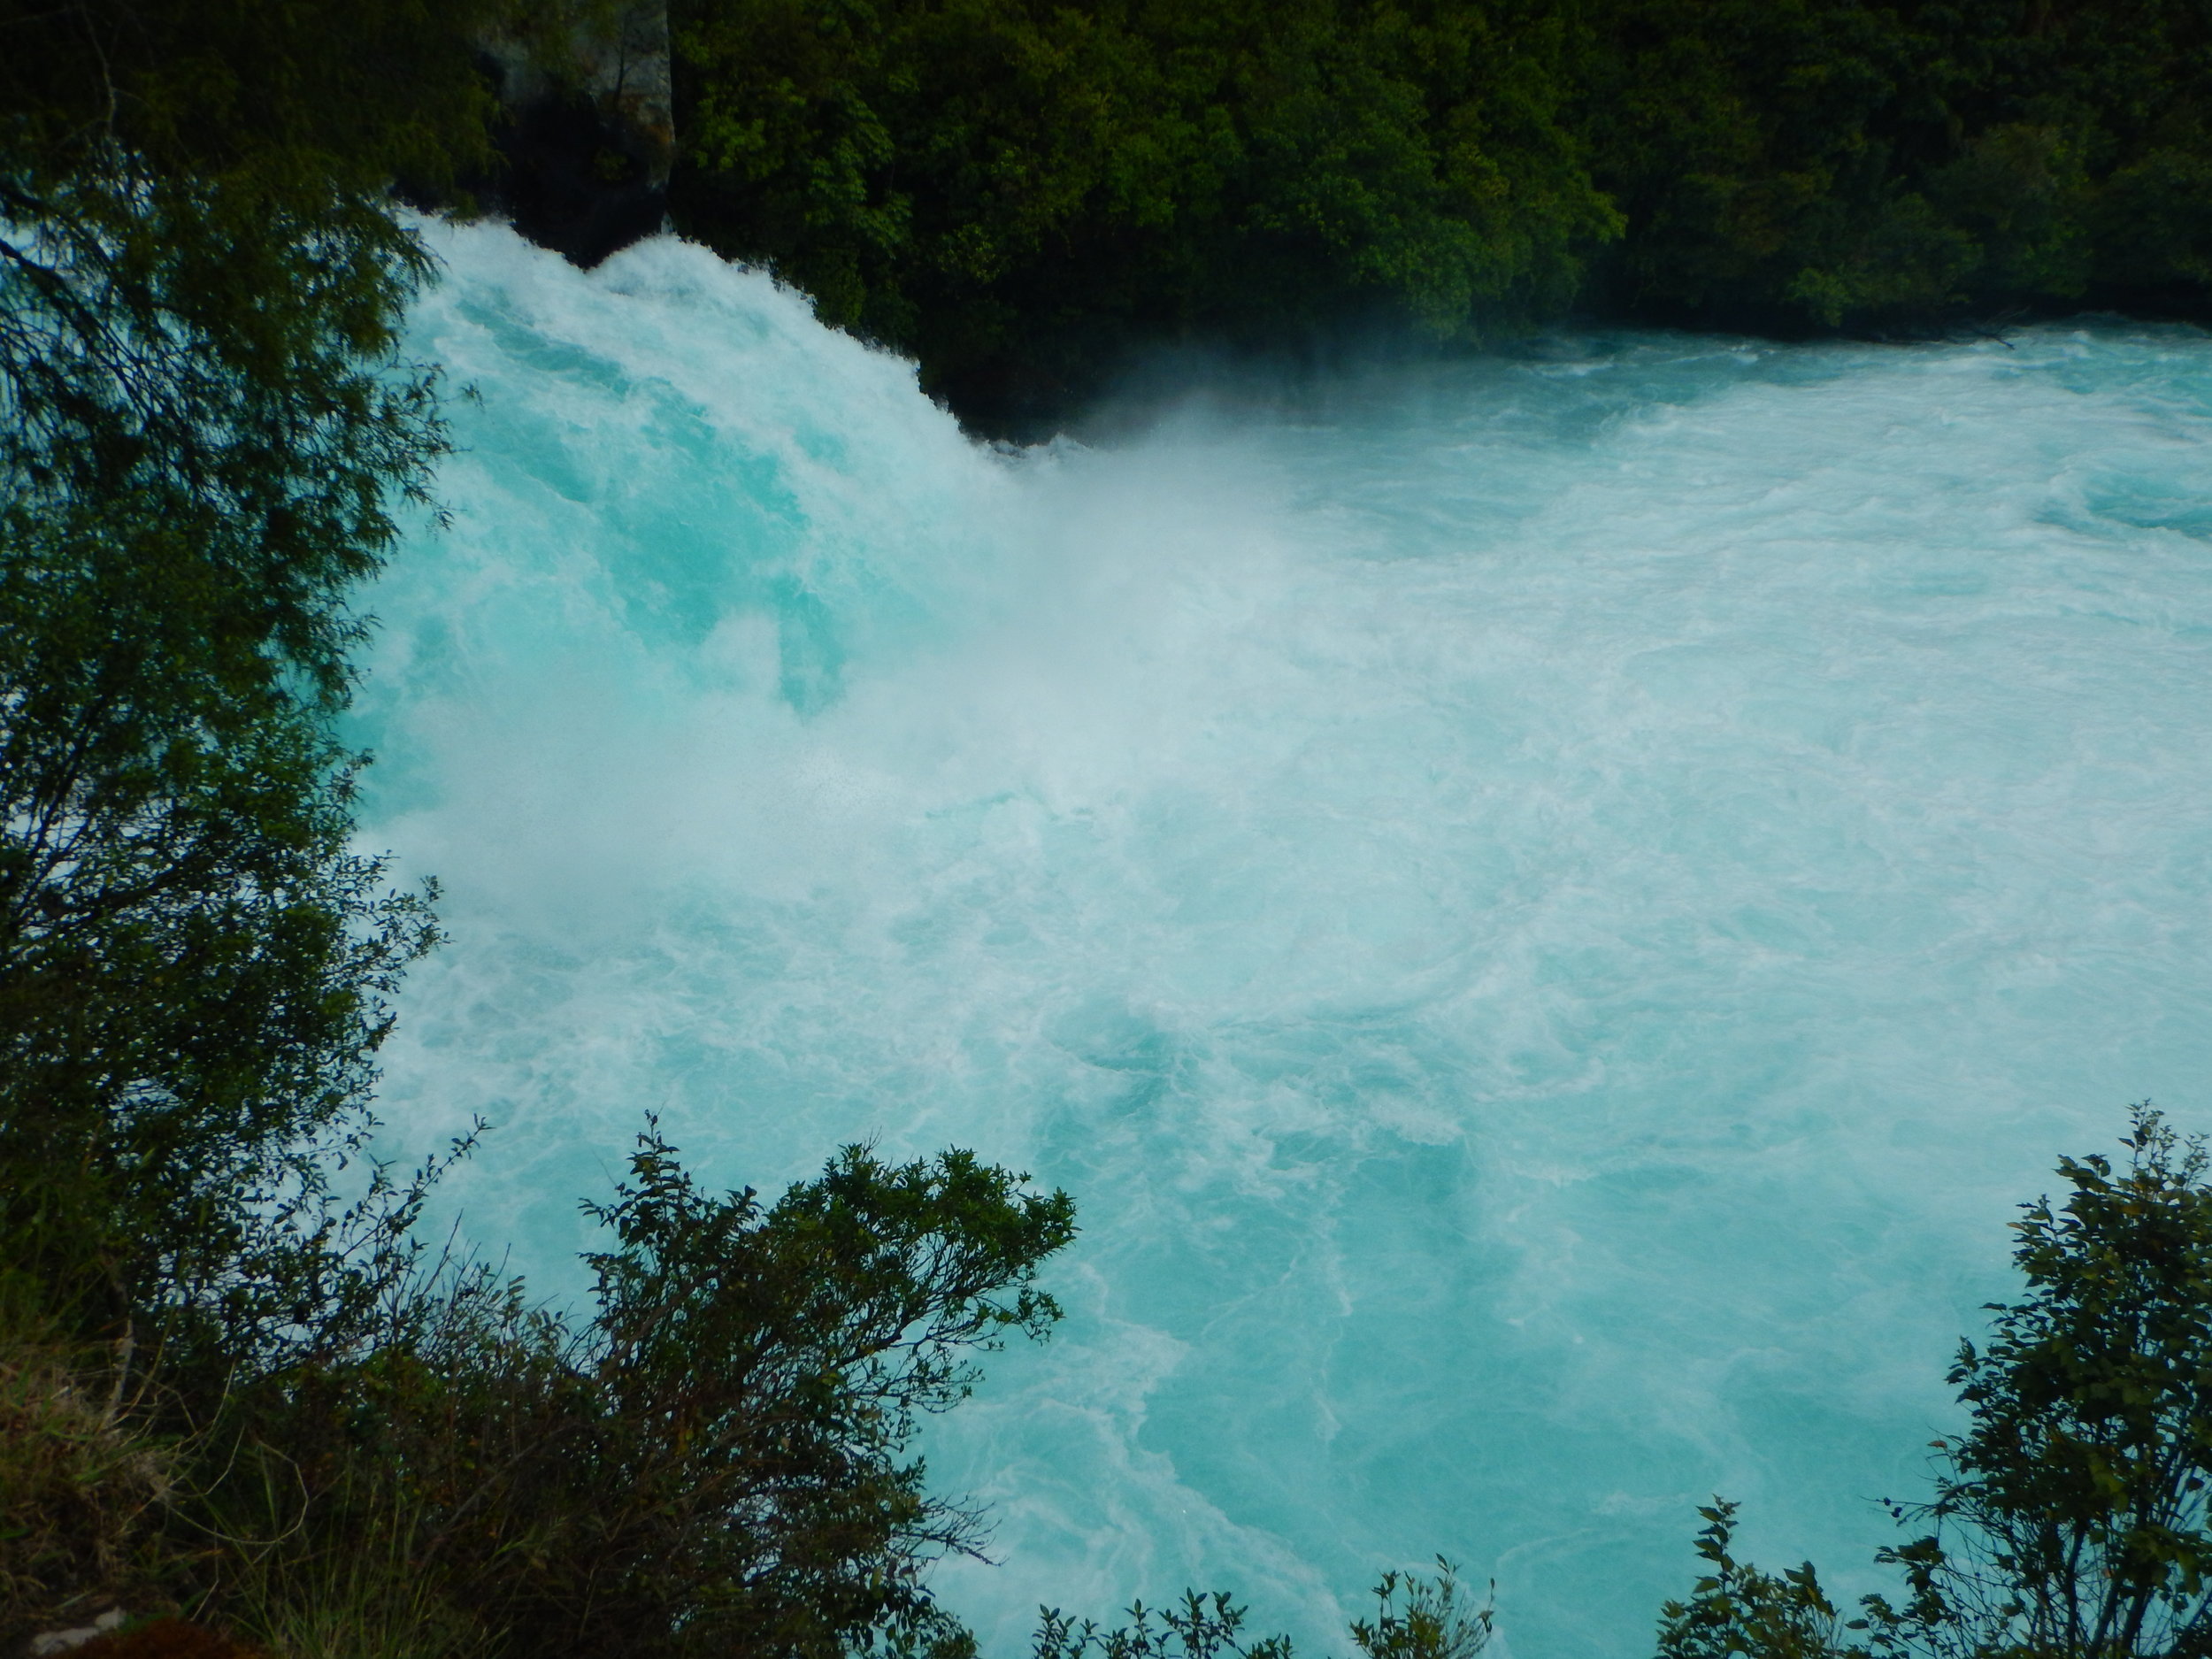 Huka Falls in action. Some crazy Kiwi kayakers have gone down the falls…on purpose!